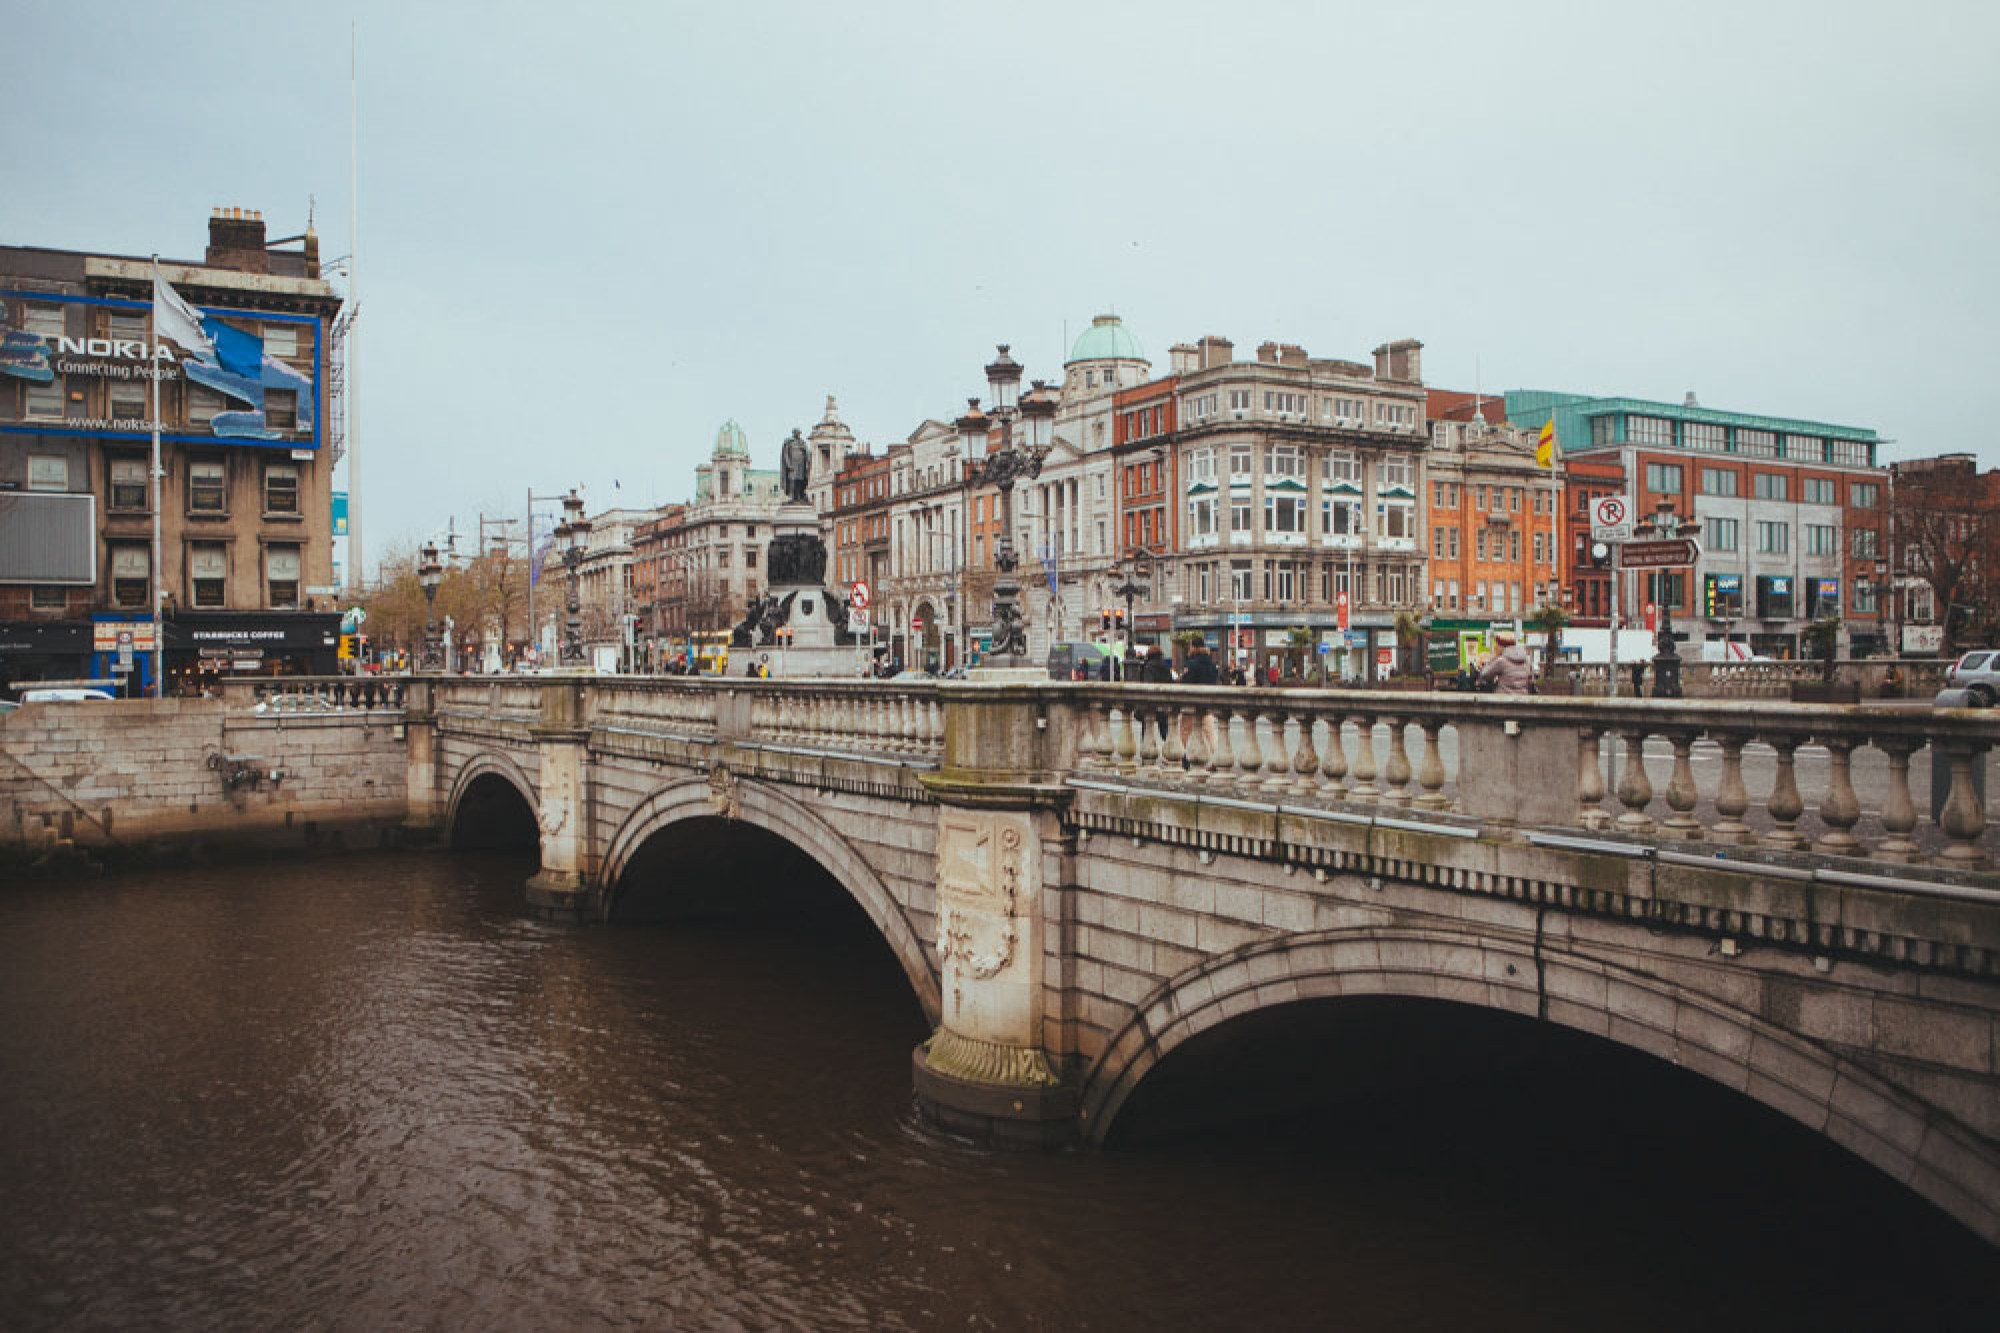 Dublin travel tips: Visit Ha'Penny Bridge